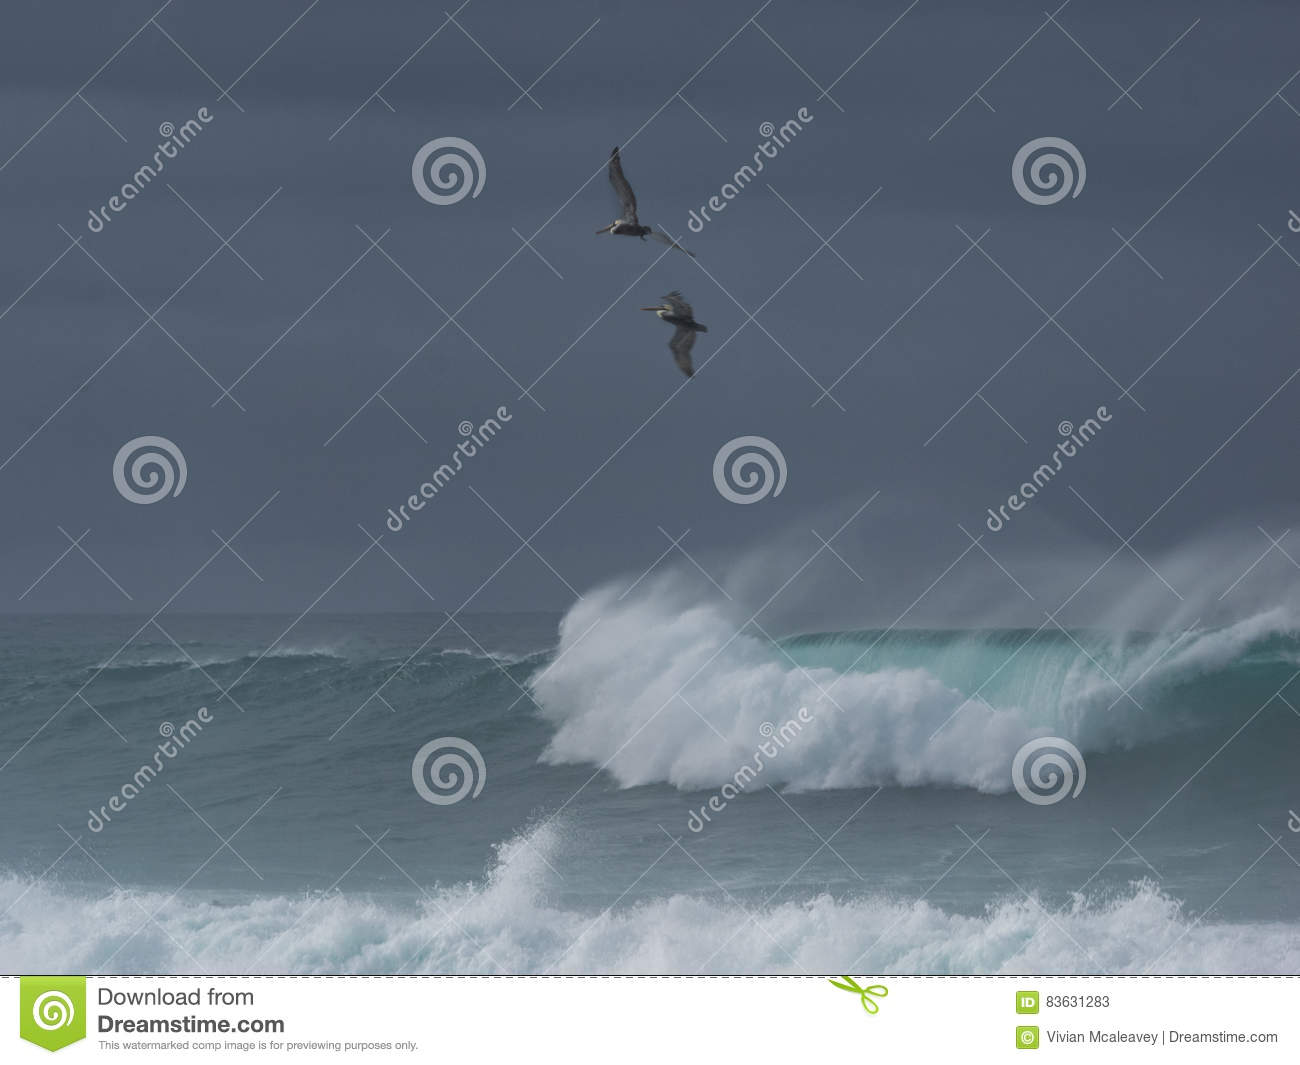 Dramatic waves with pelicans